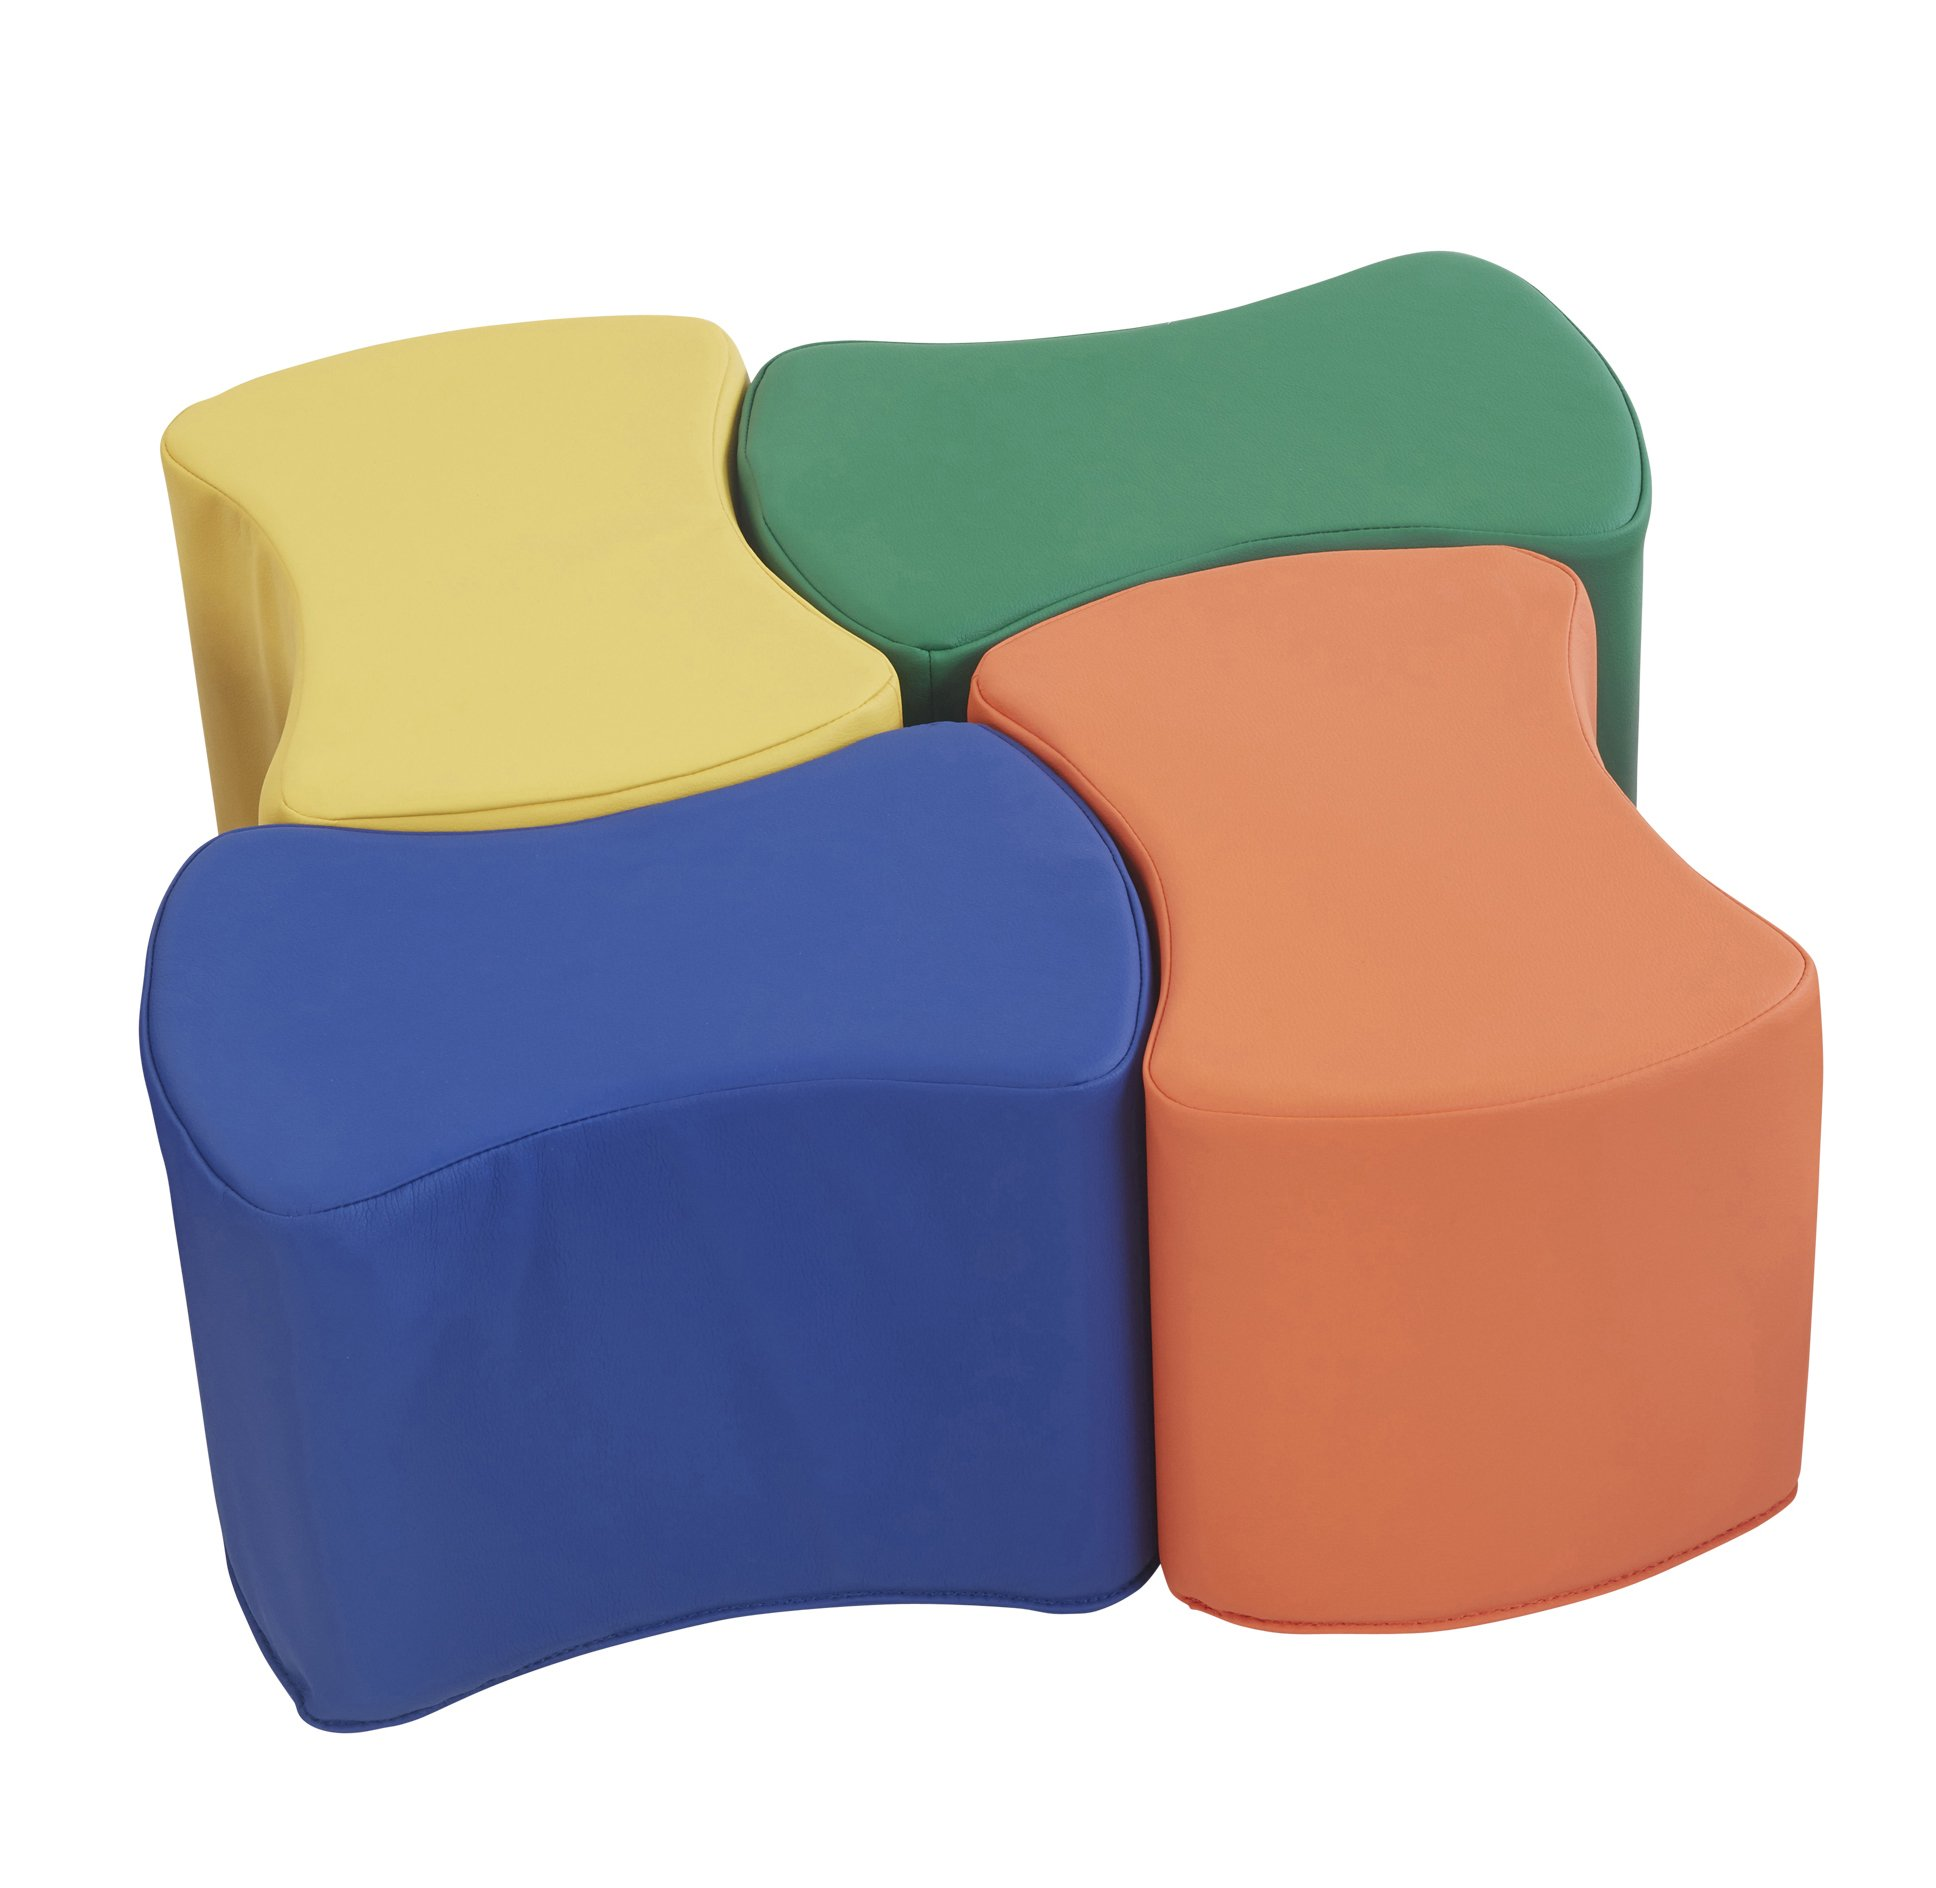 ECR4Kids SoftZone Butterfly Stool Modular Seating Set for Kids, Primary (4-Piece)